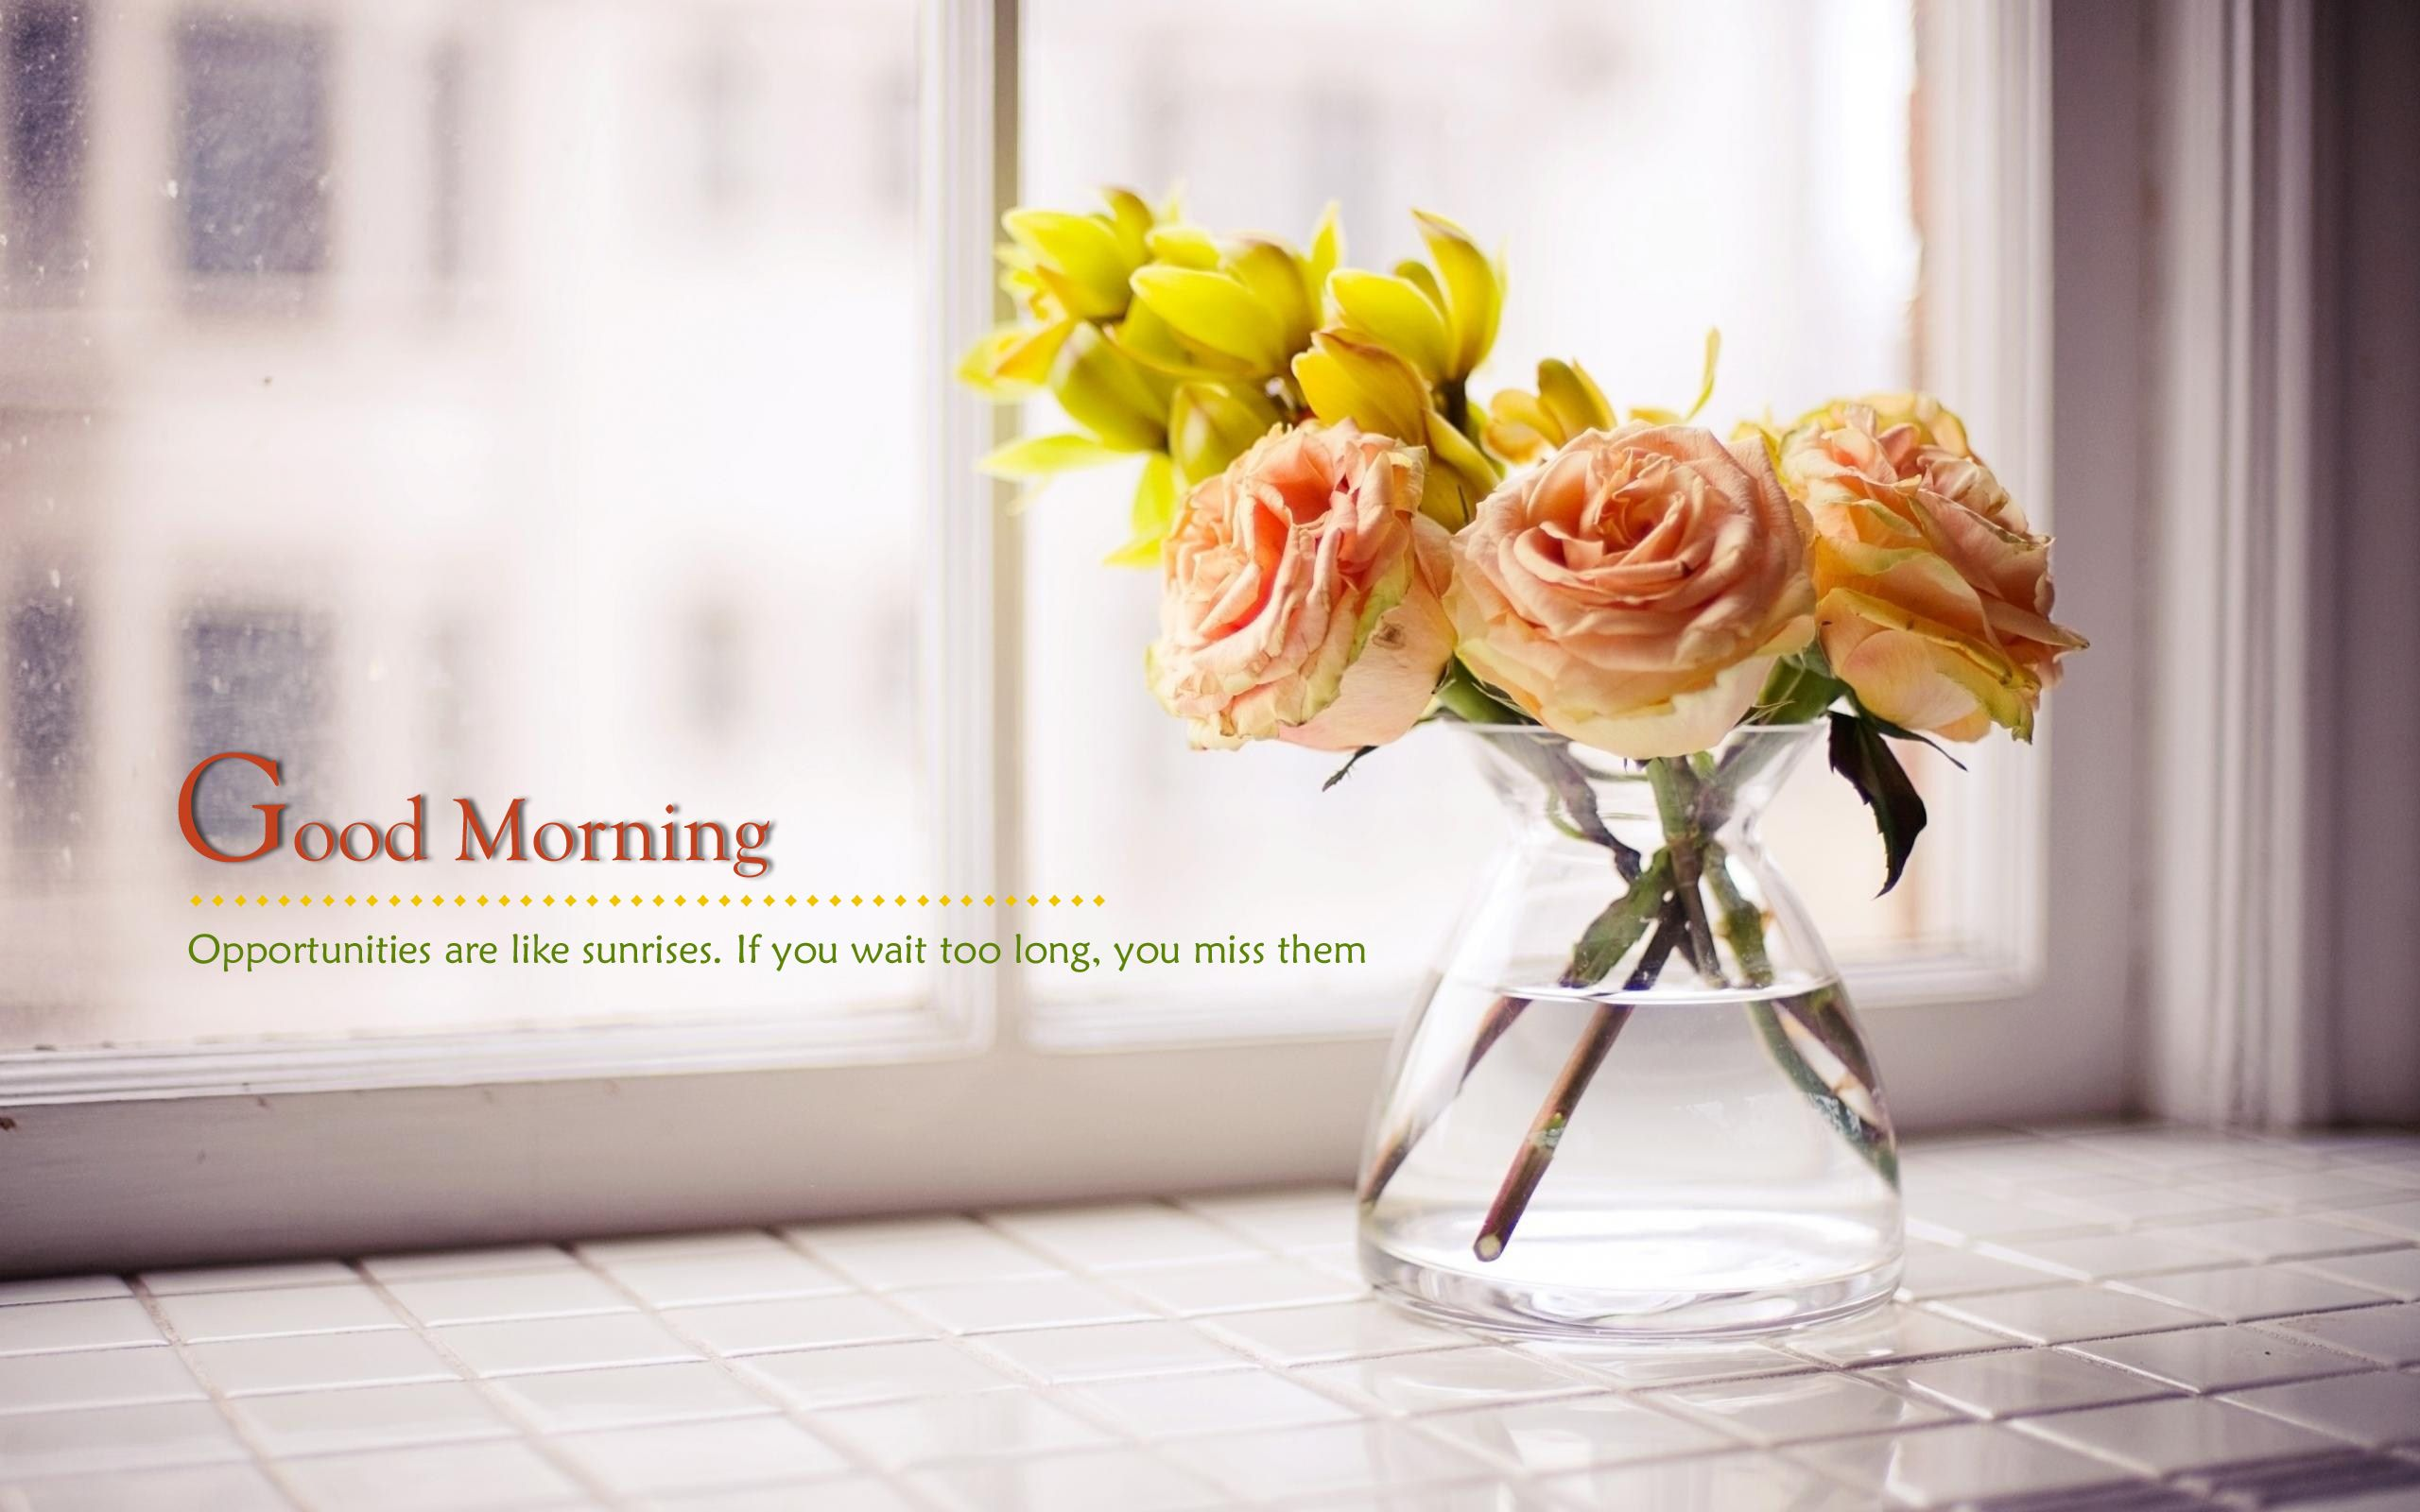 Good Morning Sunday Wallpaper Download : Good morning images with quotes have a nice